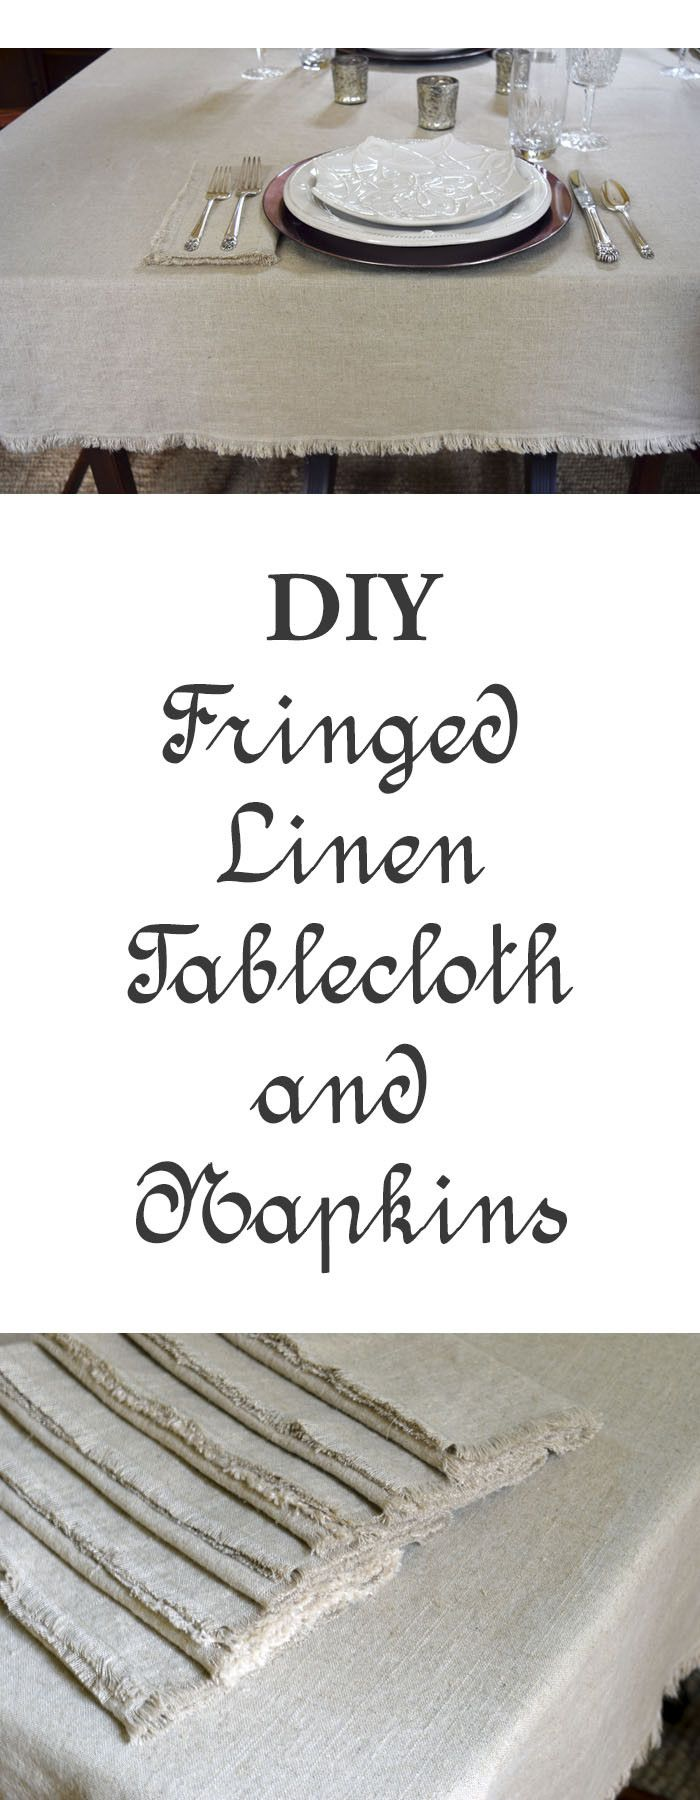 21 Best Ceiling Fan Images On Pinterest Ceilings Hunter Fans And Artemis Wiring Diagram Illustrated Instructions How To Make A Fringe Edged Linen Tablecloth Napkins Perfect For Your Holiday Entertaining Special Family Dinners